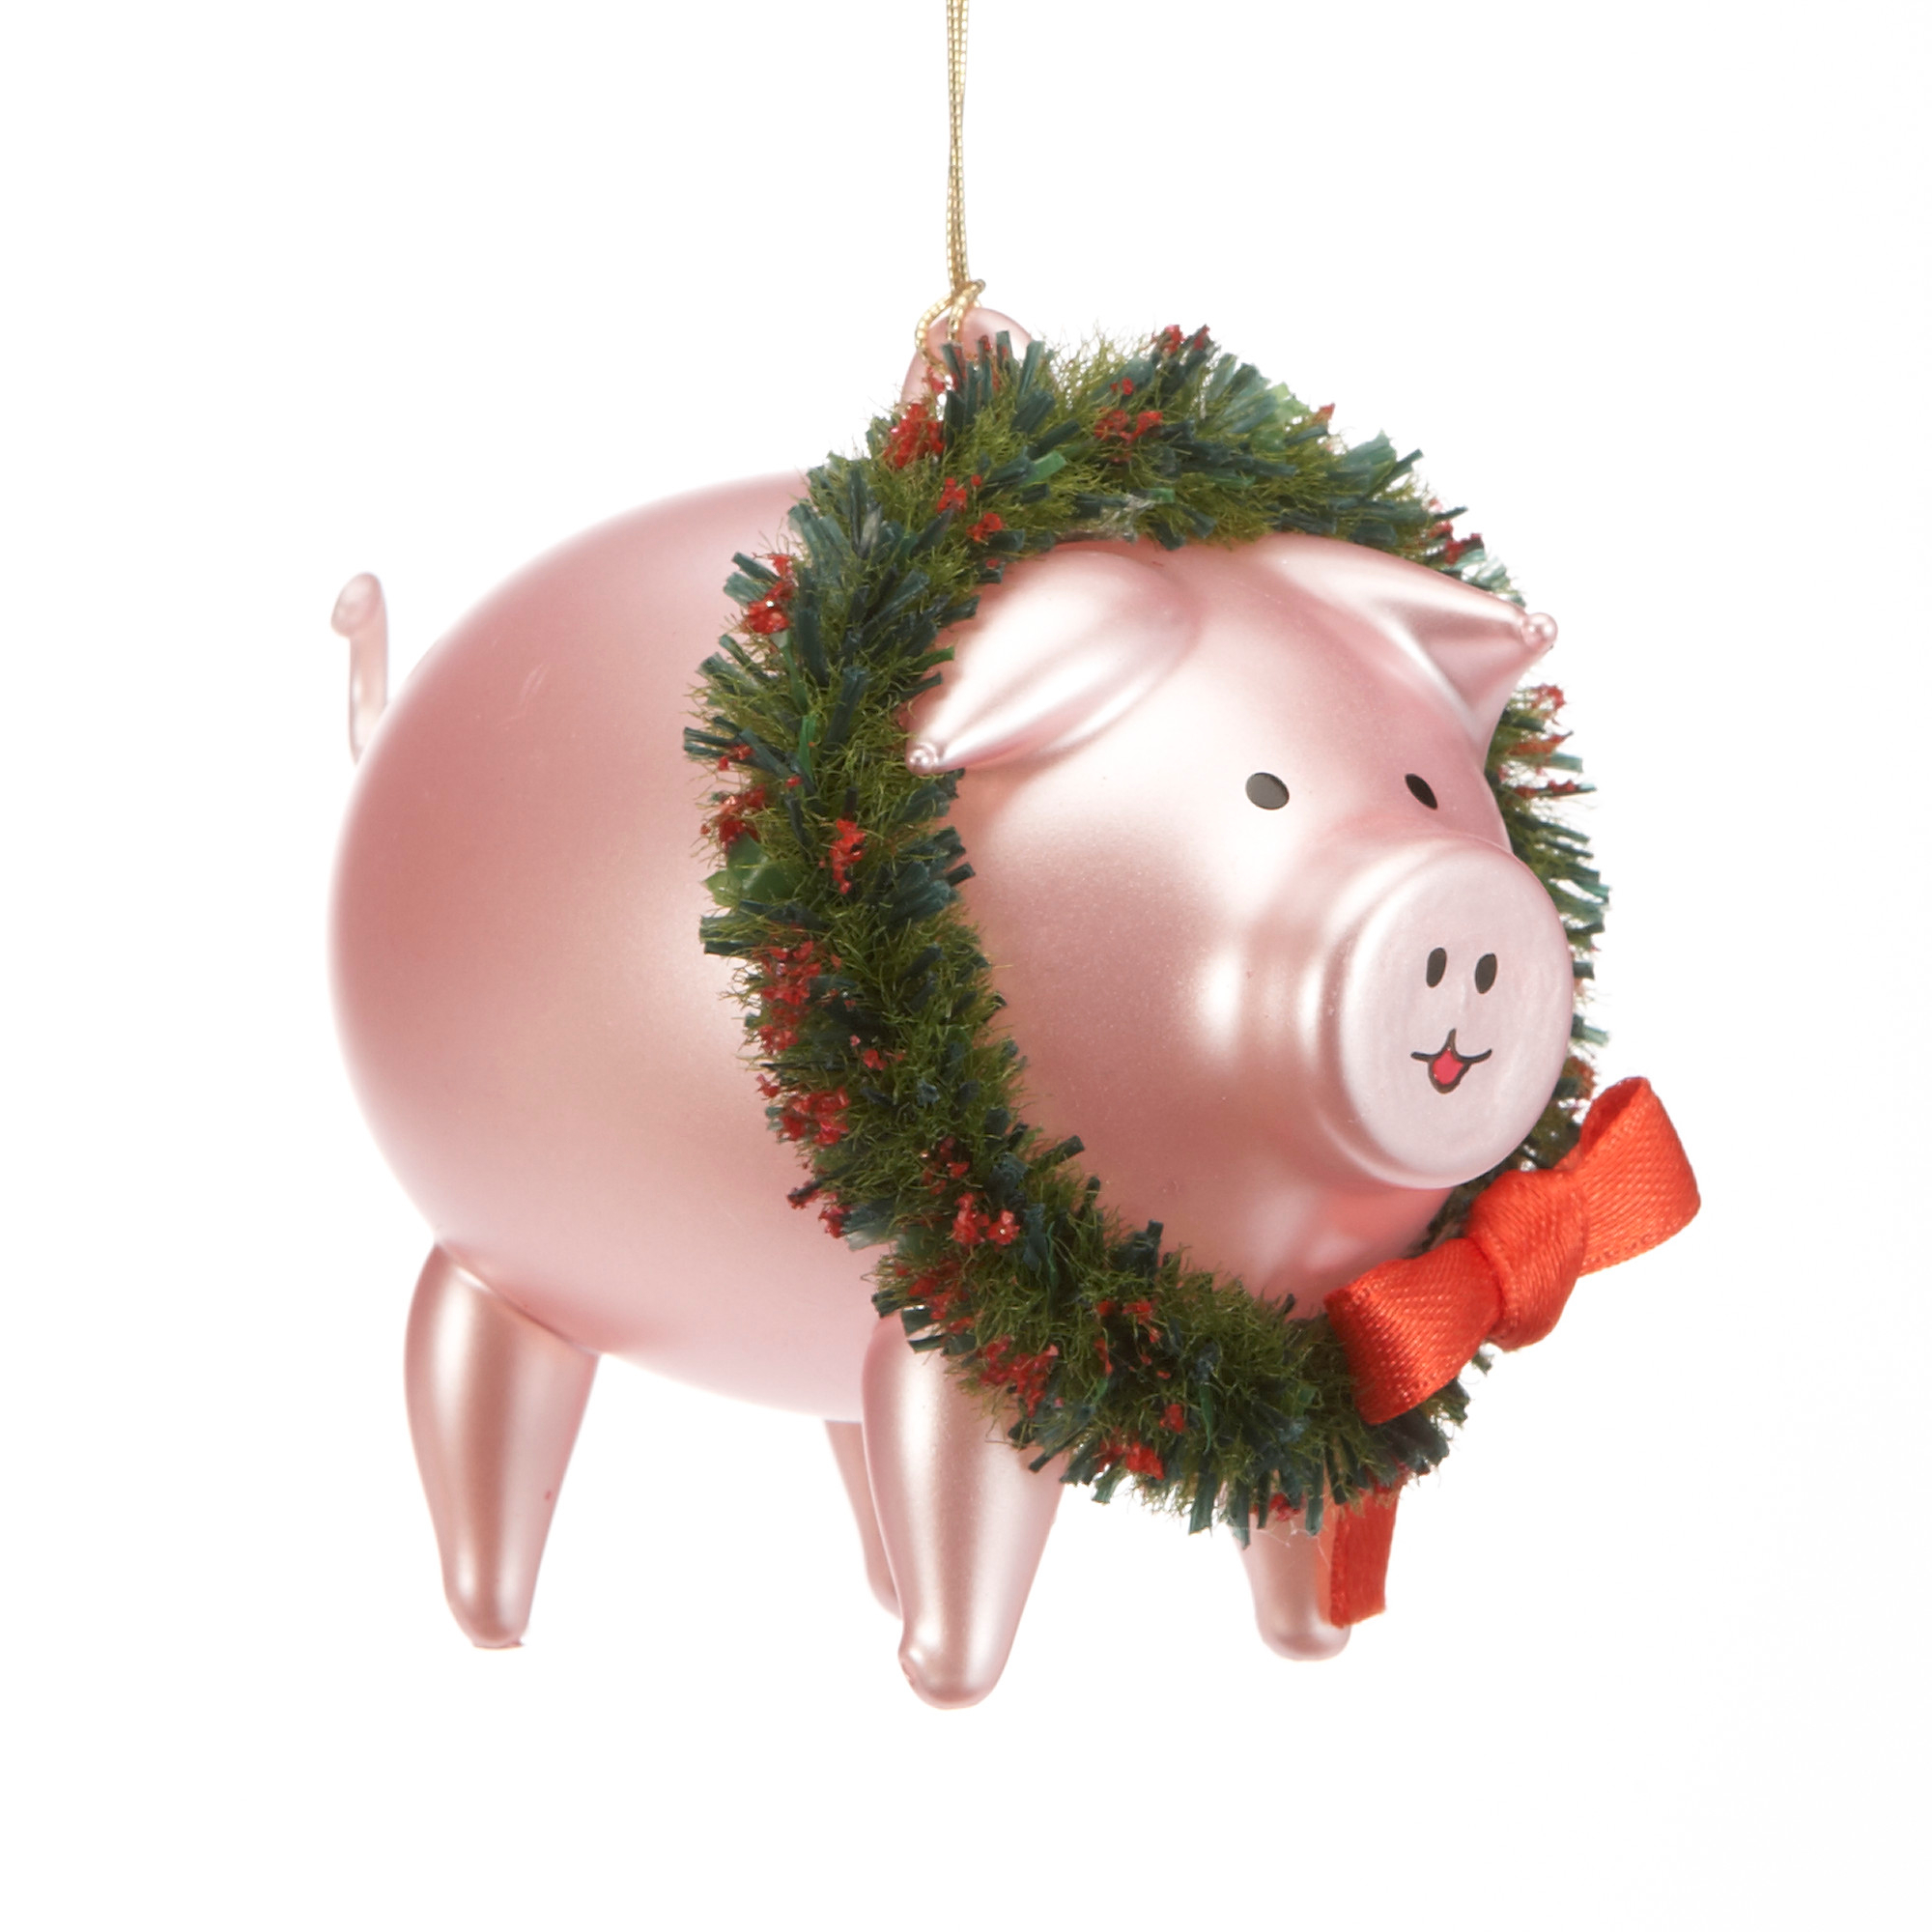 Pig with Wreath Christmas Ornament